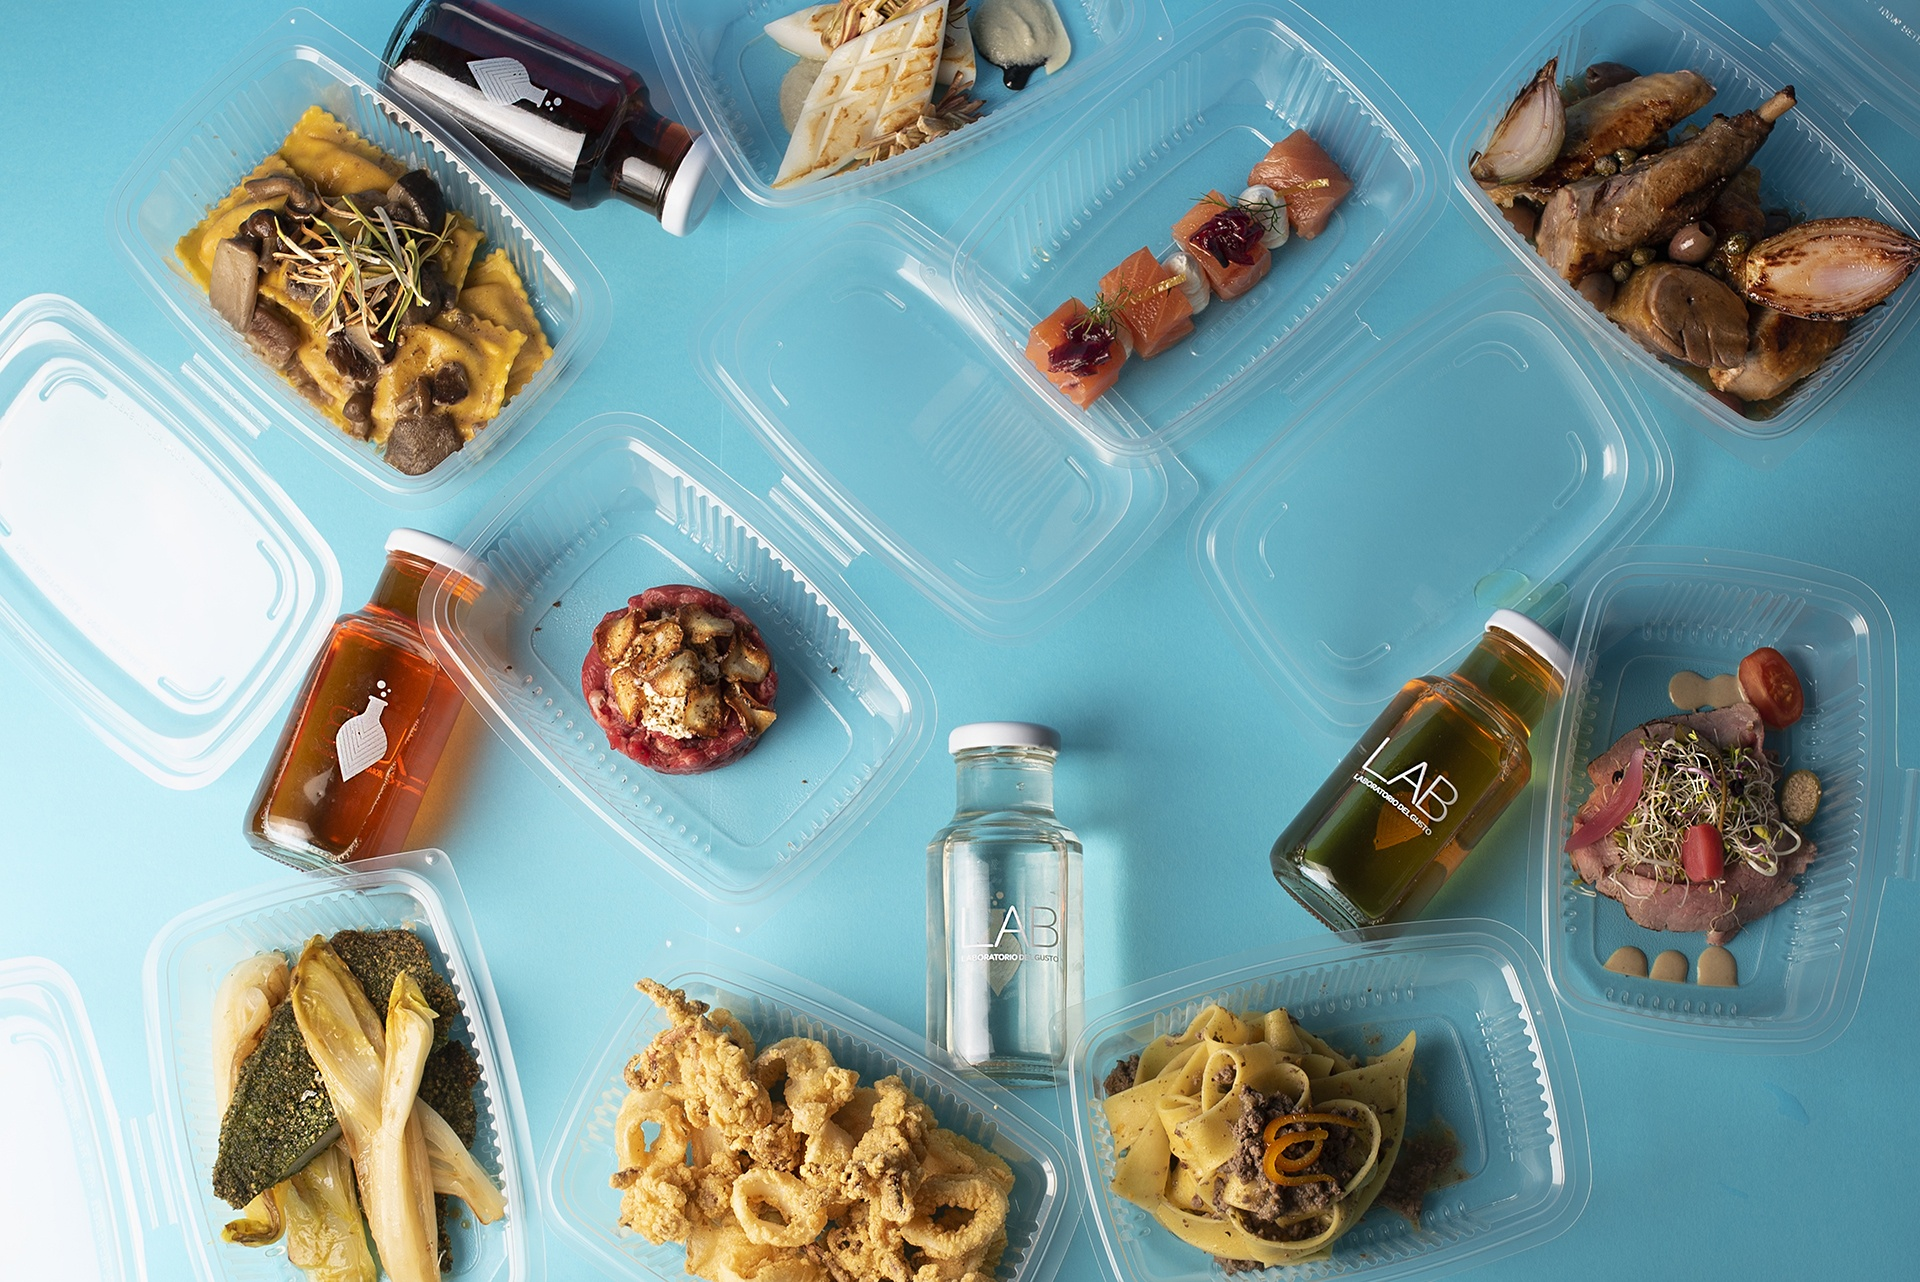 officina-visiva-lab-restaurant-food-drink-foto-delivery-asporto